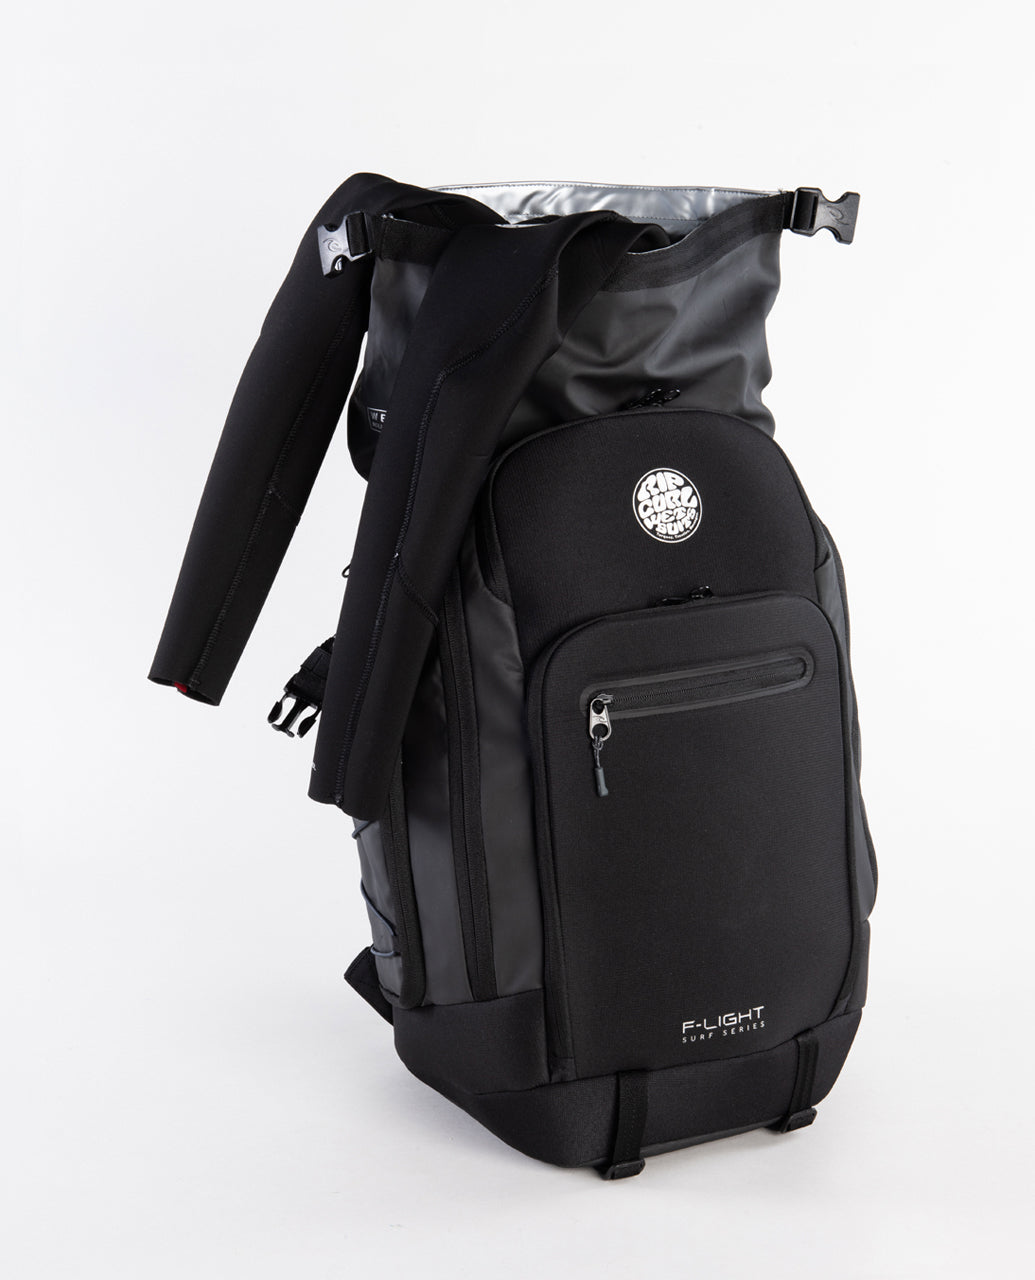 F-Light Surf Midnight 2 Backpack 40l